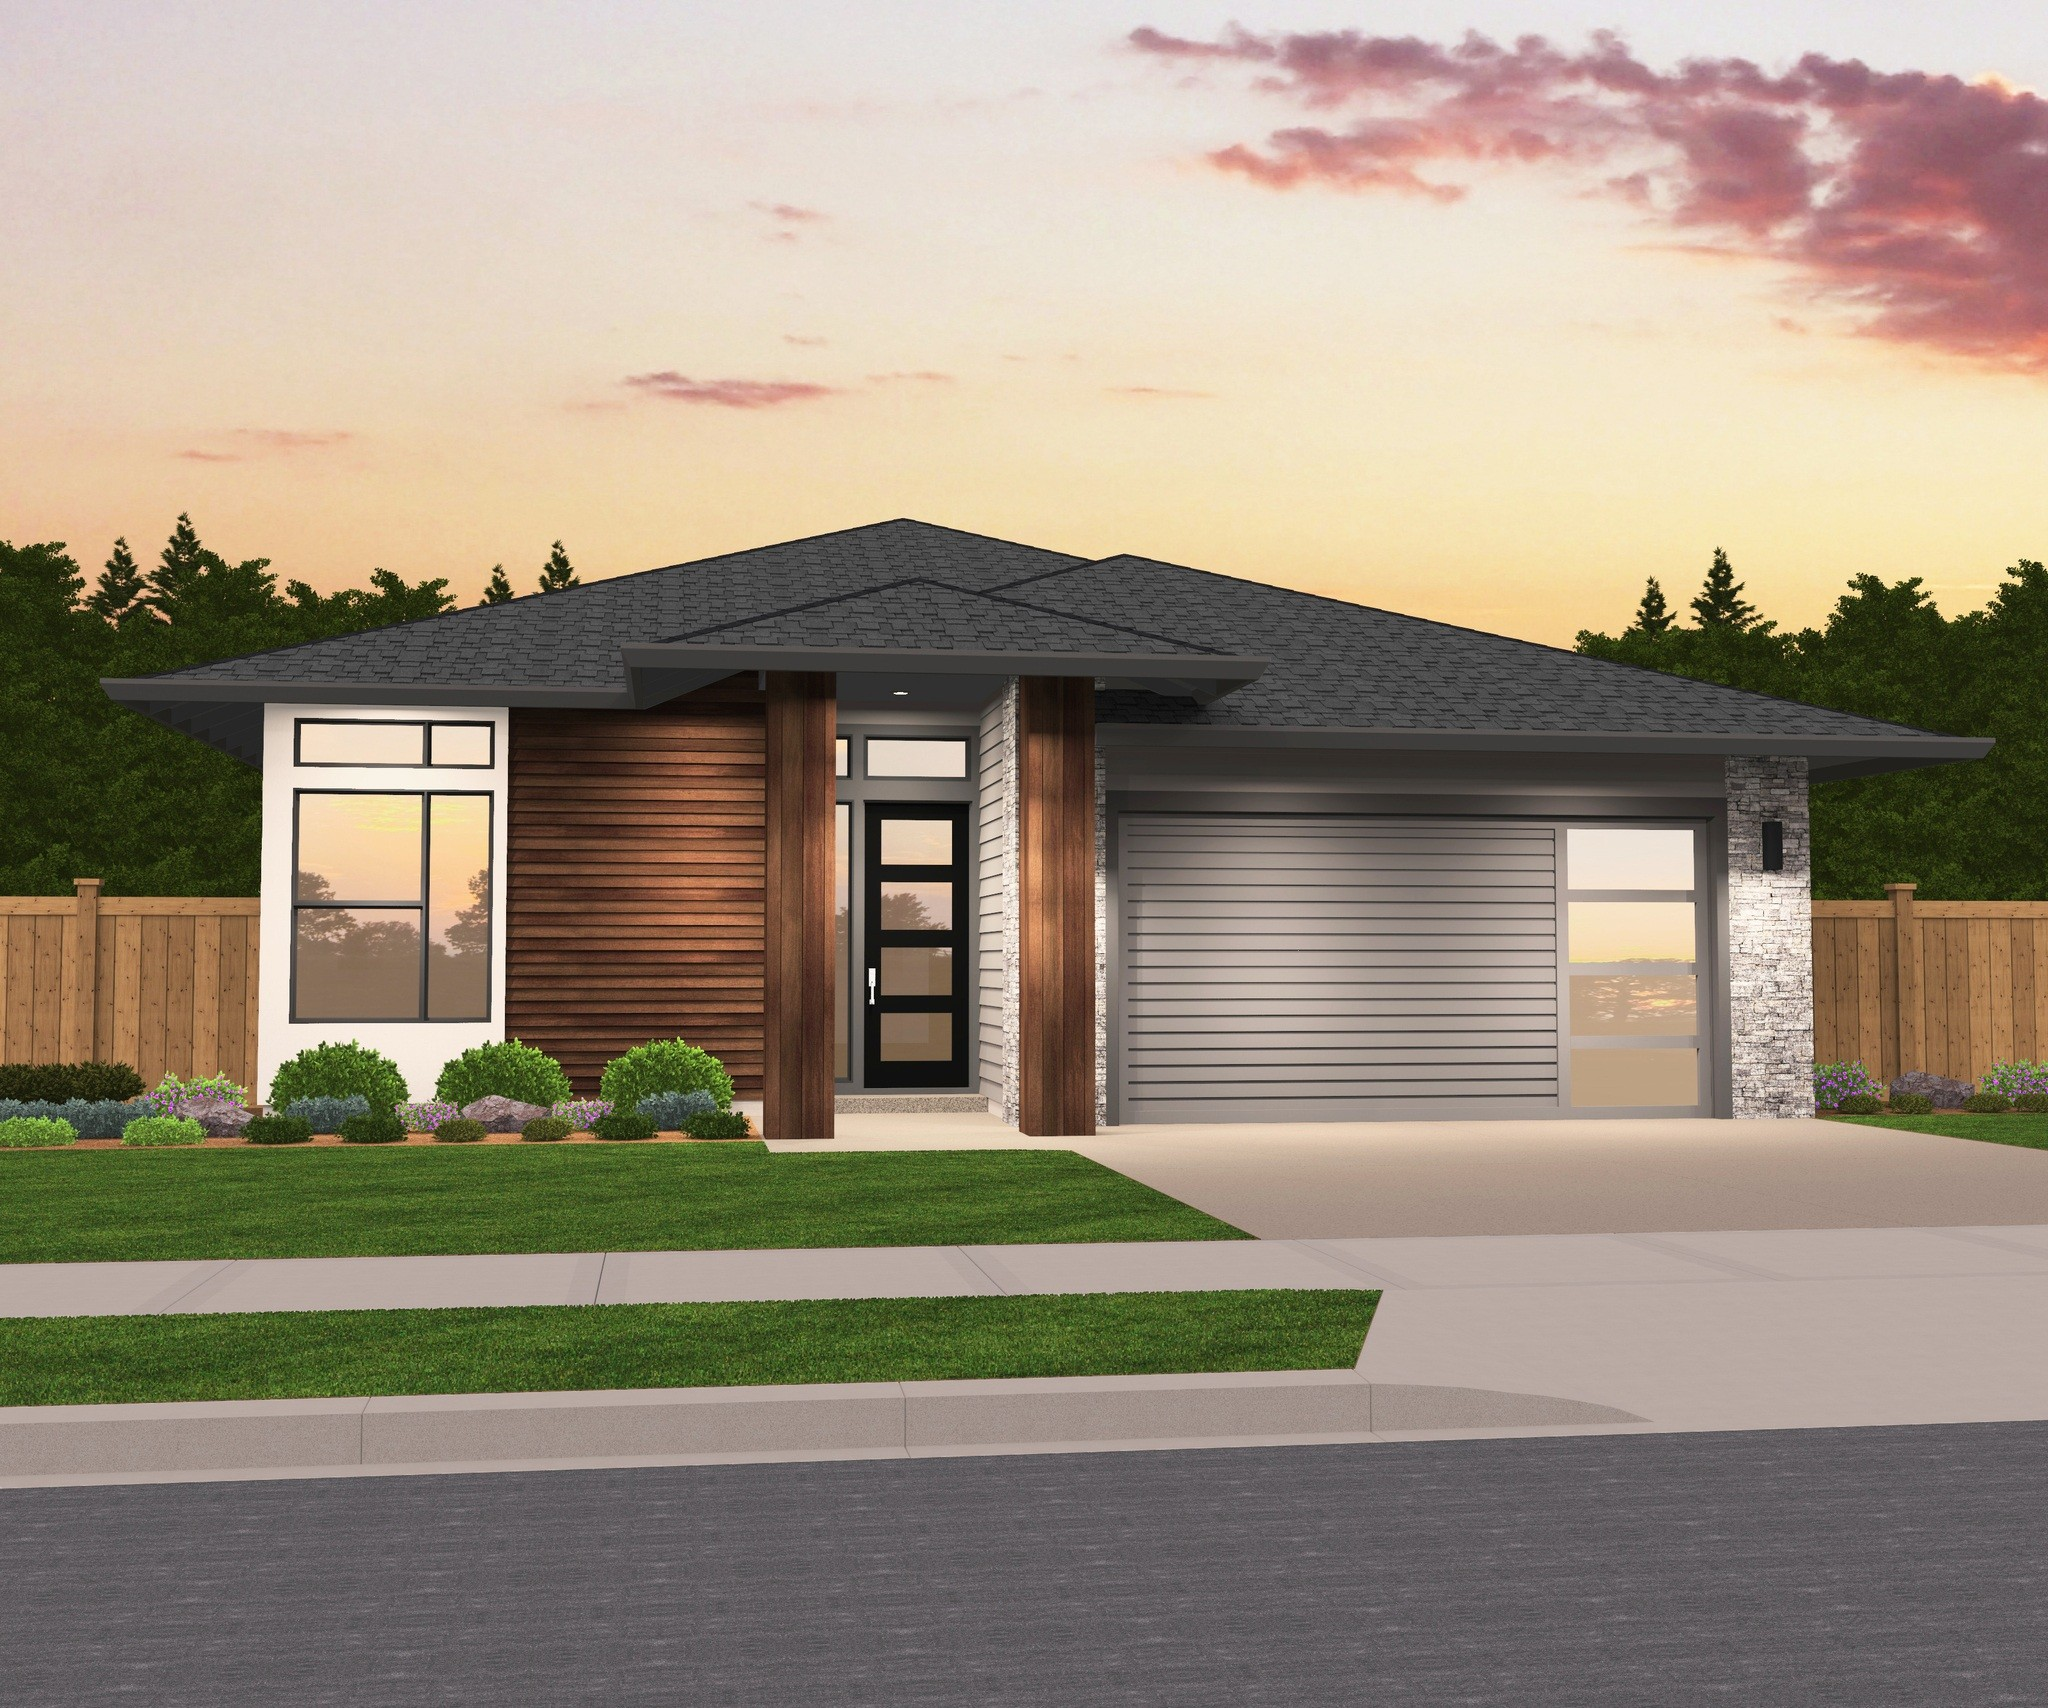 House Plans by Mark Stewart | Shop Home Designs Online Here